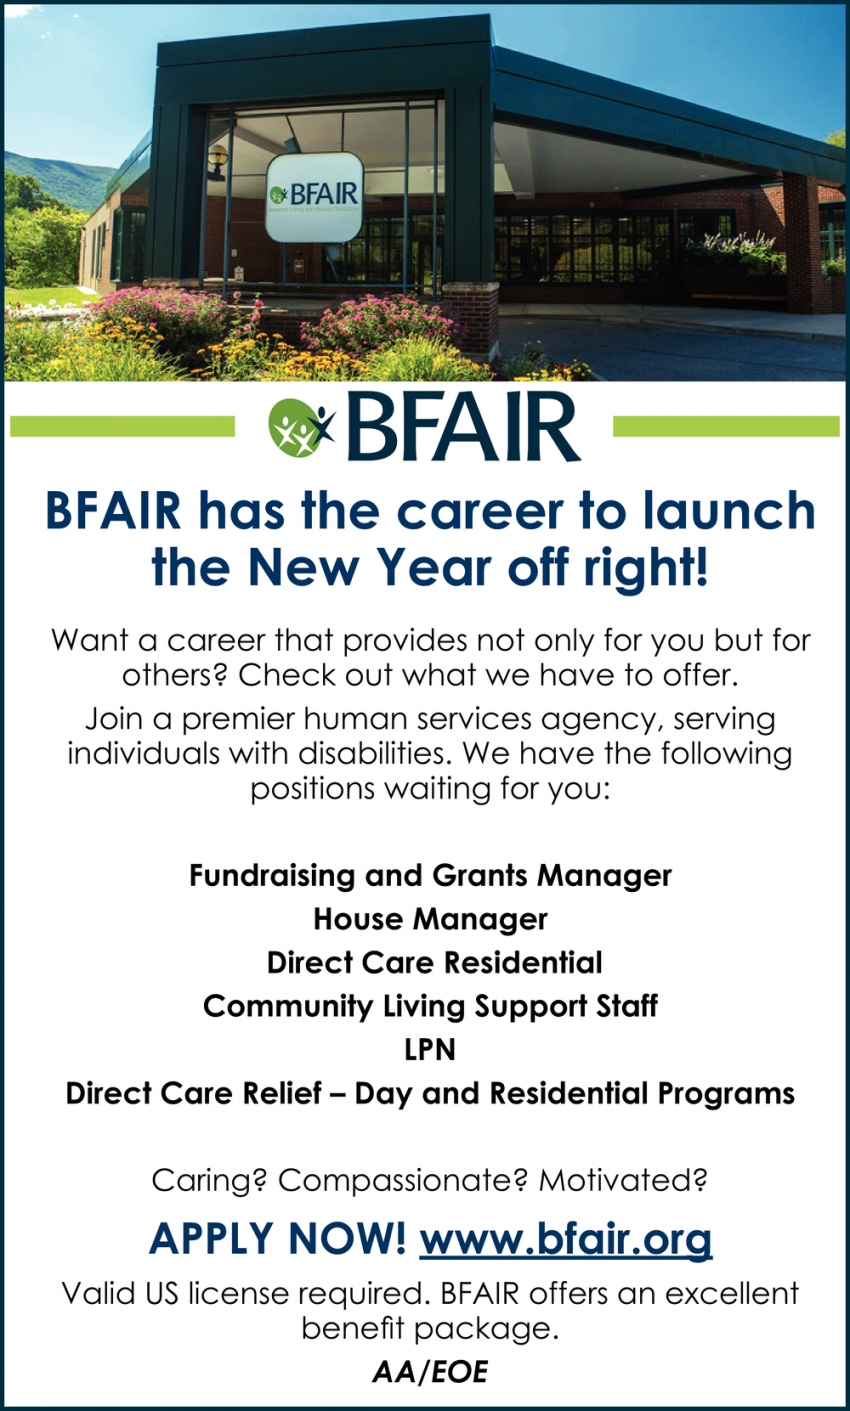 BFAIR Has the Career to Launch the New Year Off Right!